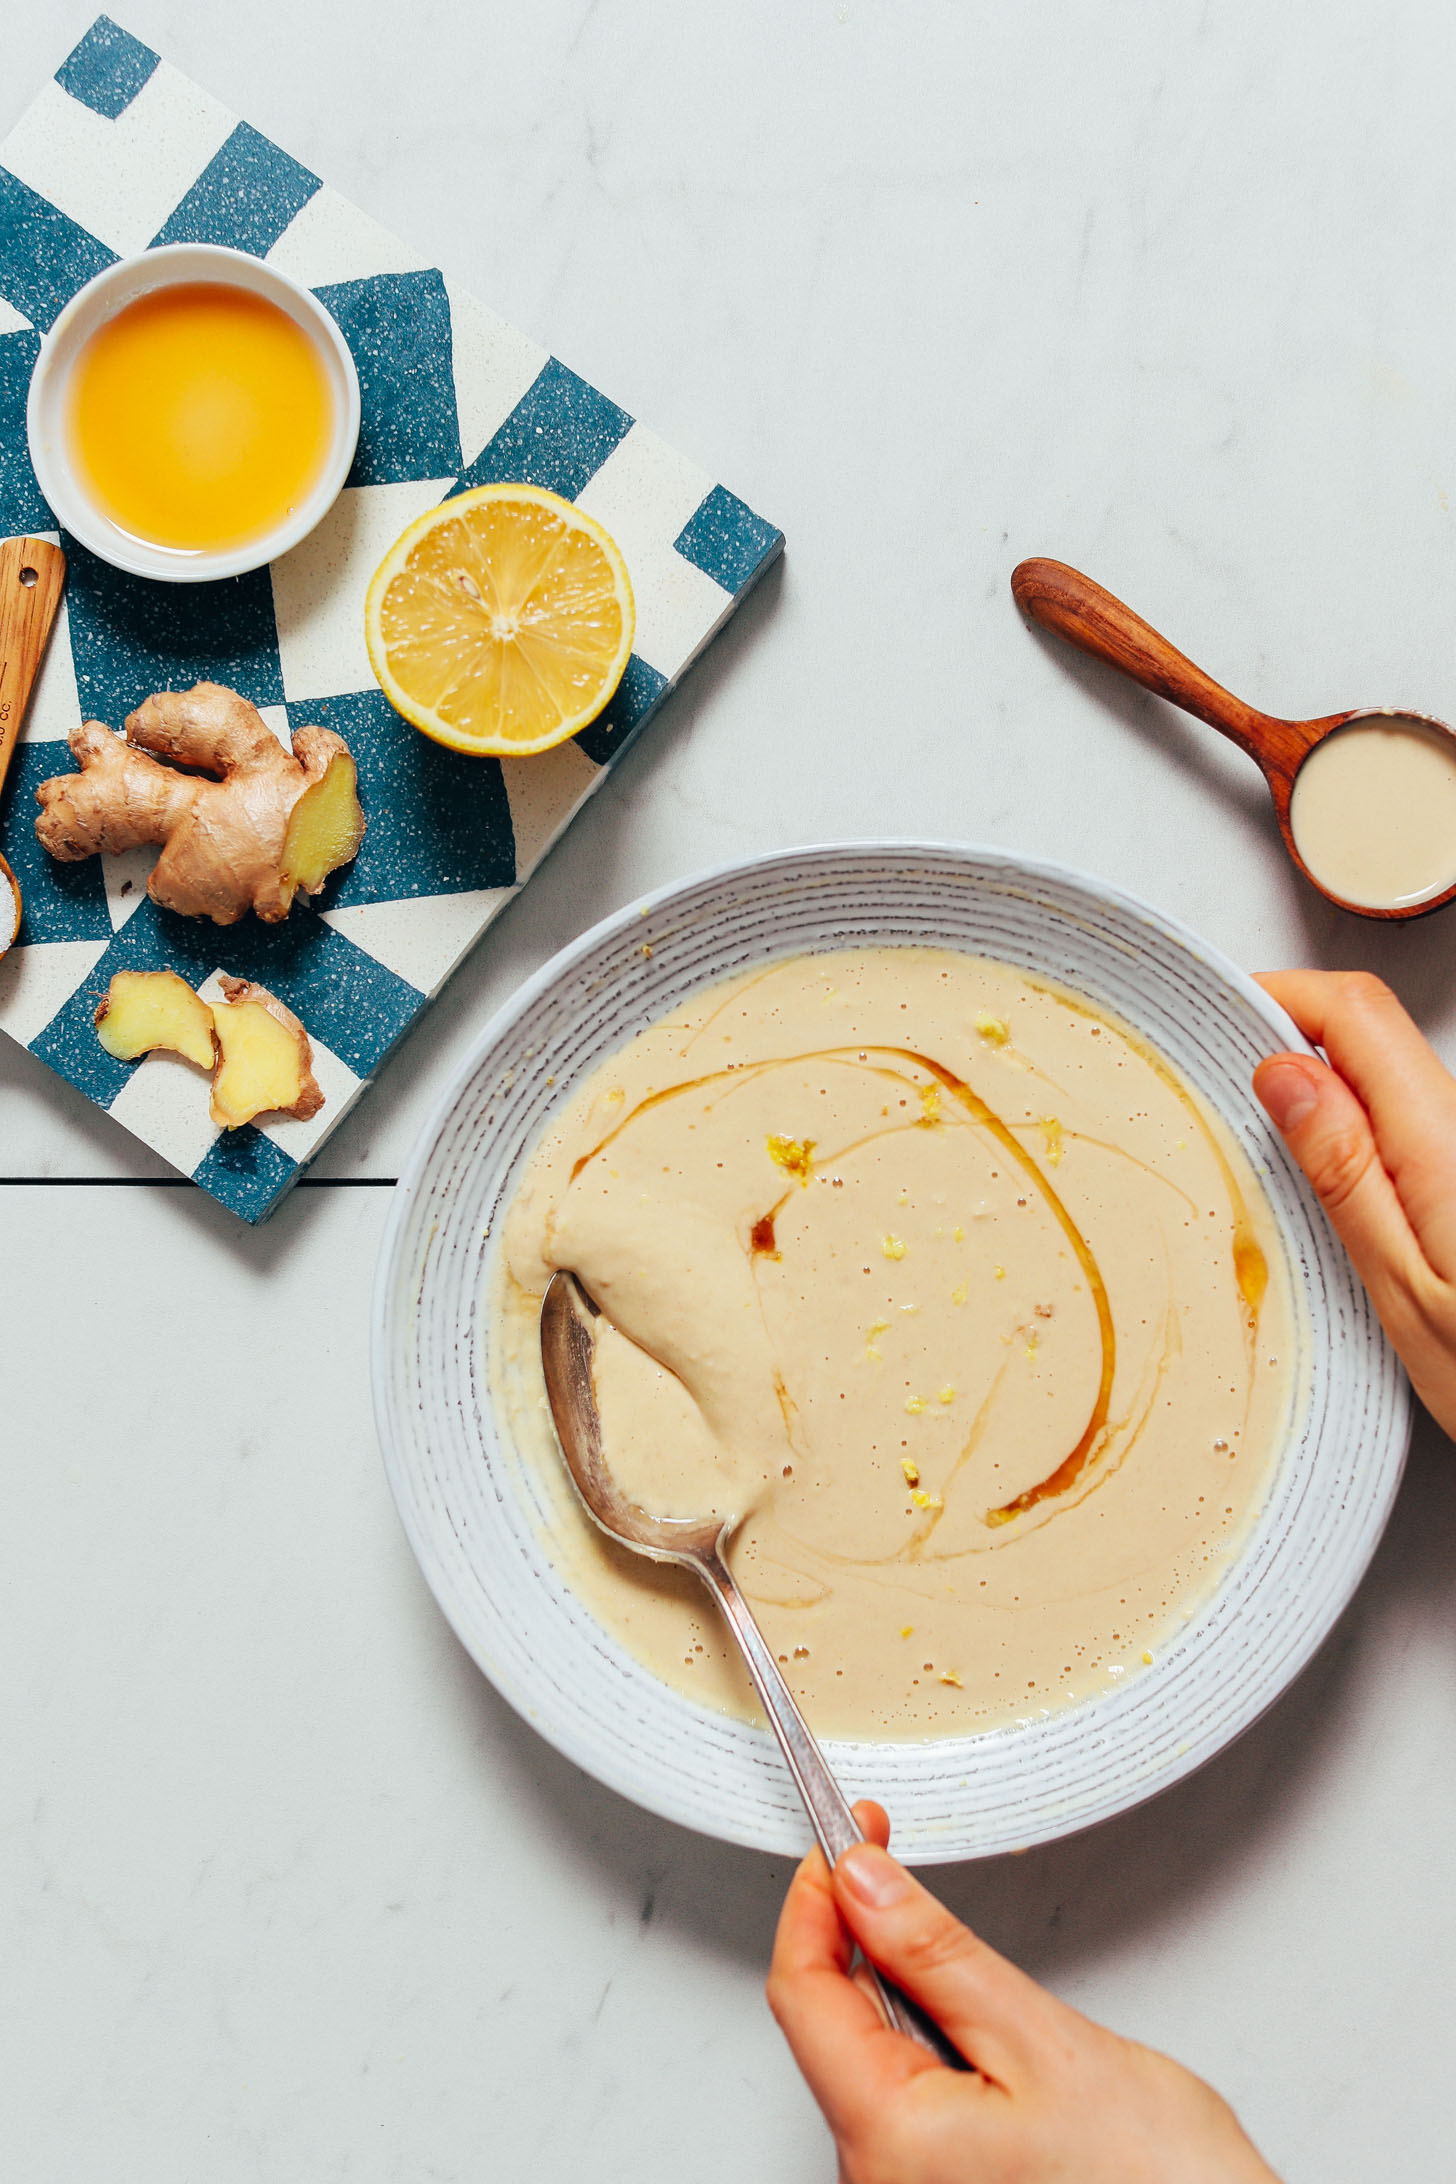 Lemon zest and a swirl of maple syrup in a bowl of our Gingery Lemon Tahini Sauce